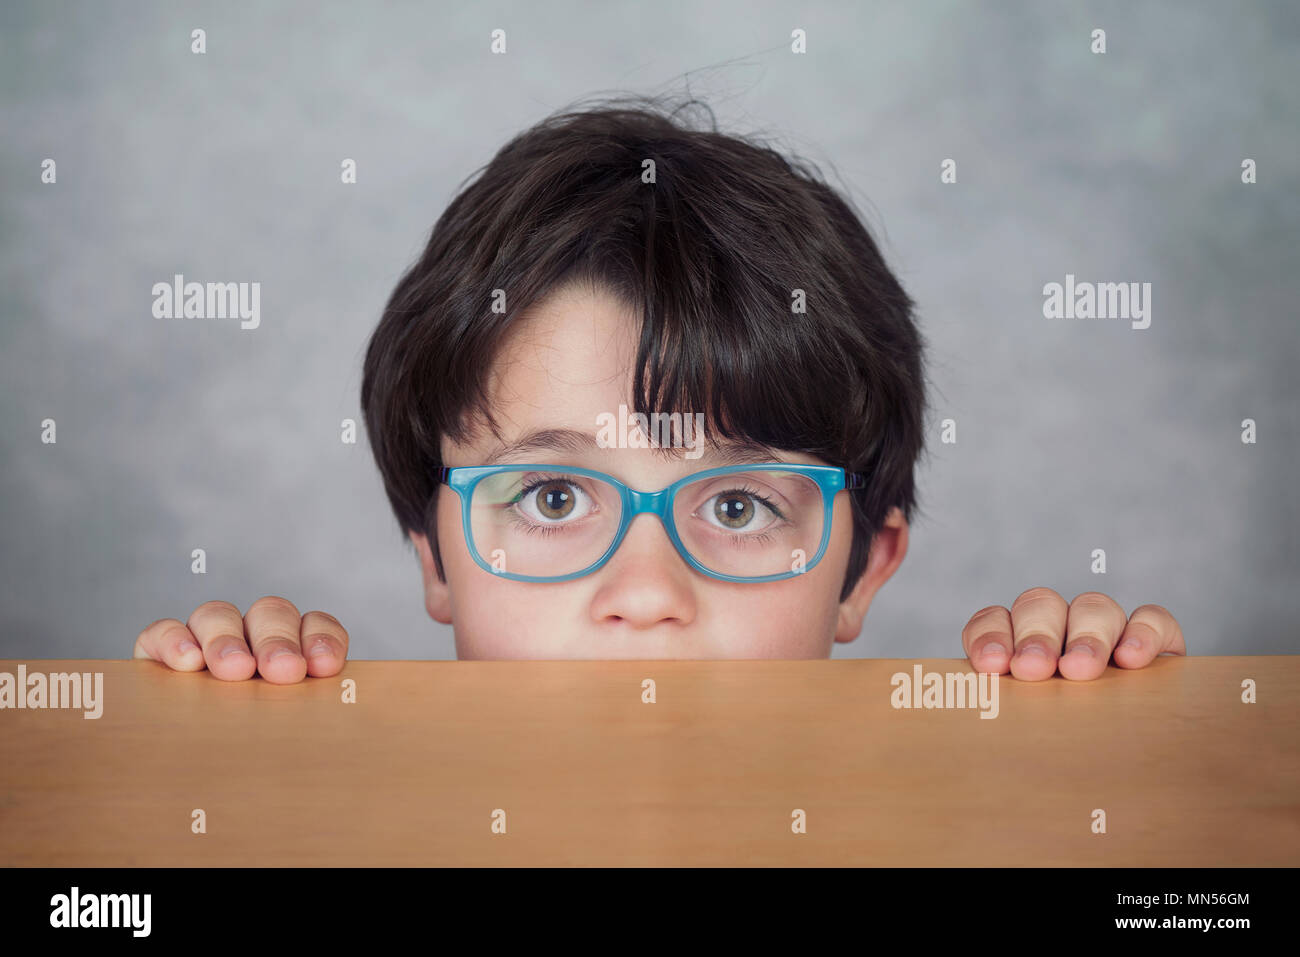 boy with glasses on a wooden table on gray background - Stock Image